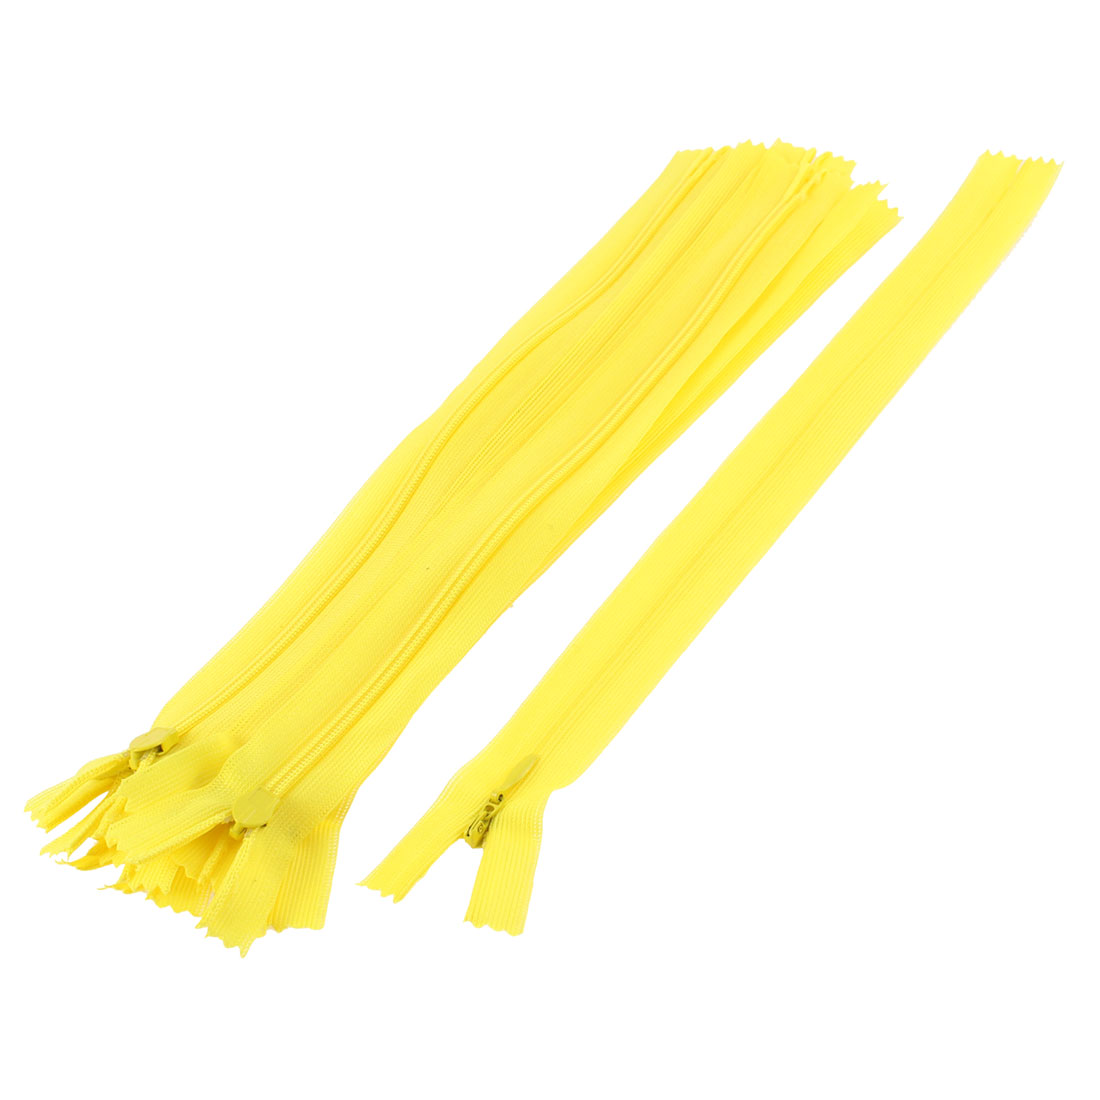 Clothes Invisible Nylon Coil Zippers Tailor Sewing Craft Tool Yellow 25cm 10 Pcs